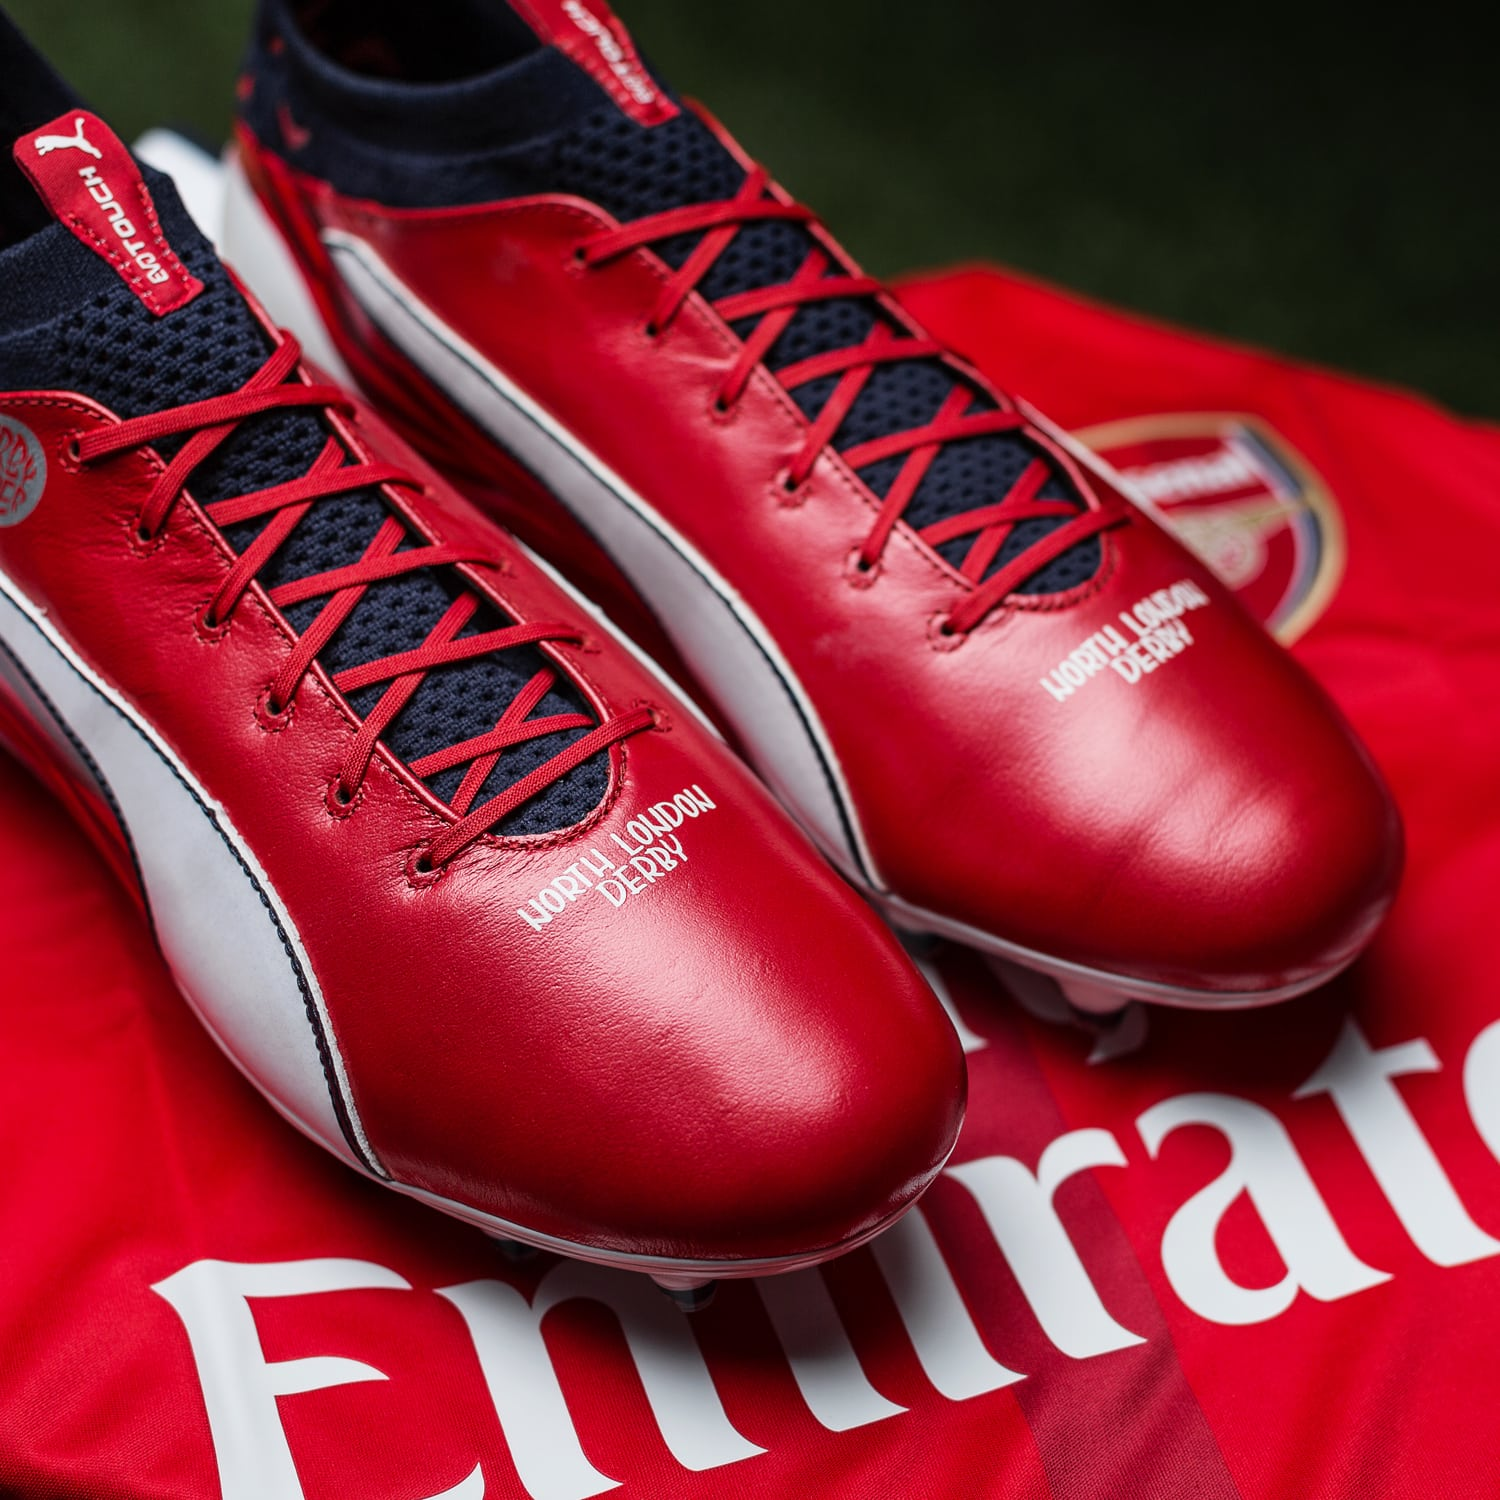 chaussures-football-puma-evotouch-cazorla-london-derby-img3